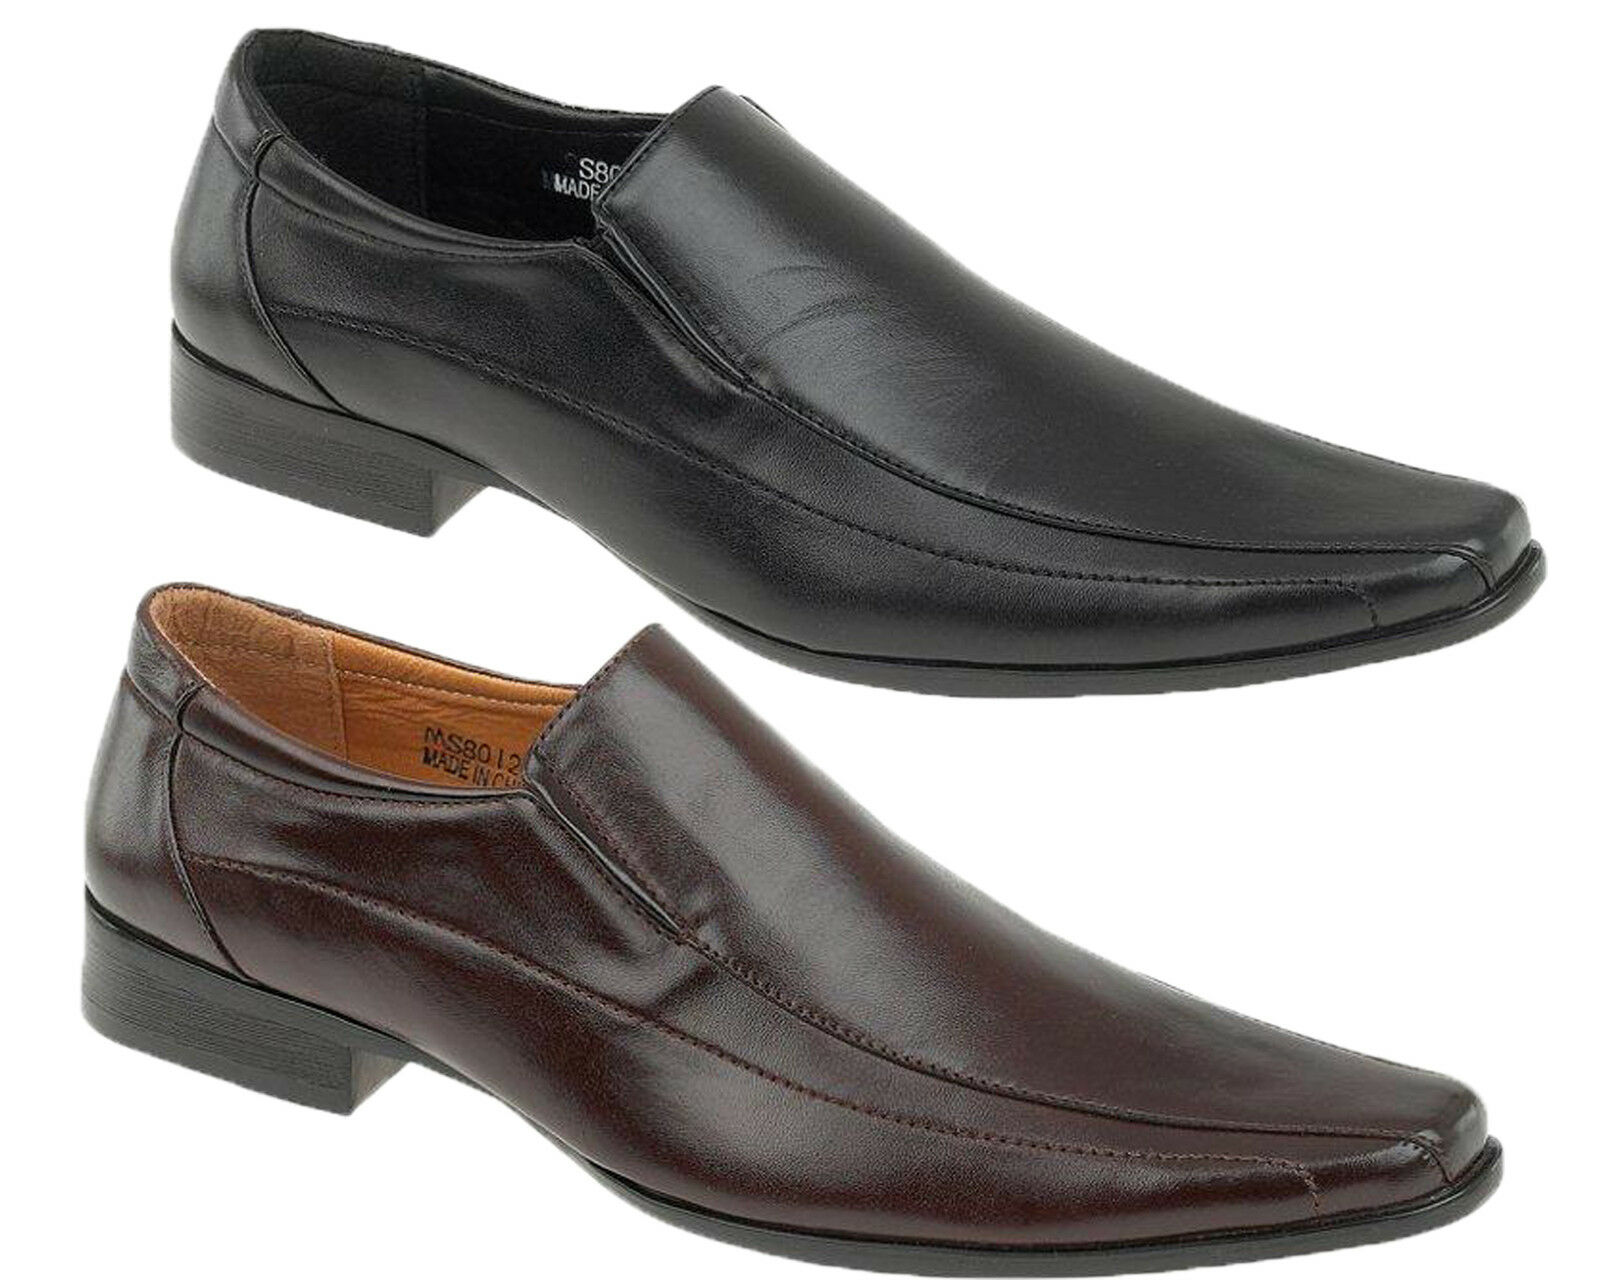 Mens MONTIALBANI Formal Smart Casual Shoes Slip-on Dress shoes Casual Smart Loafers shoes New 74811f